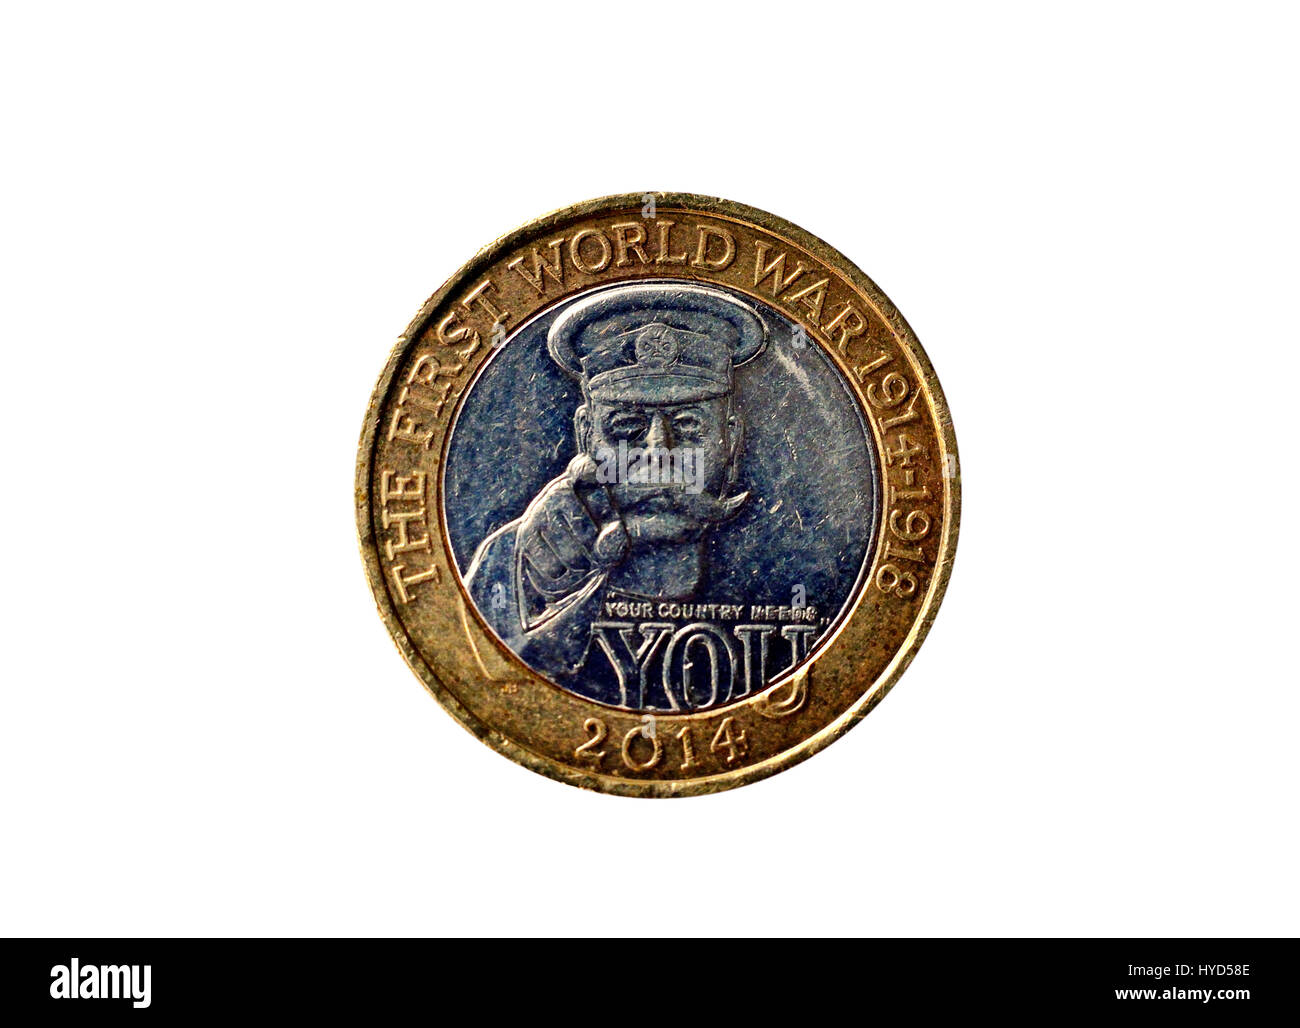 Unusual and special celebration two pound coin - Stock Image